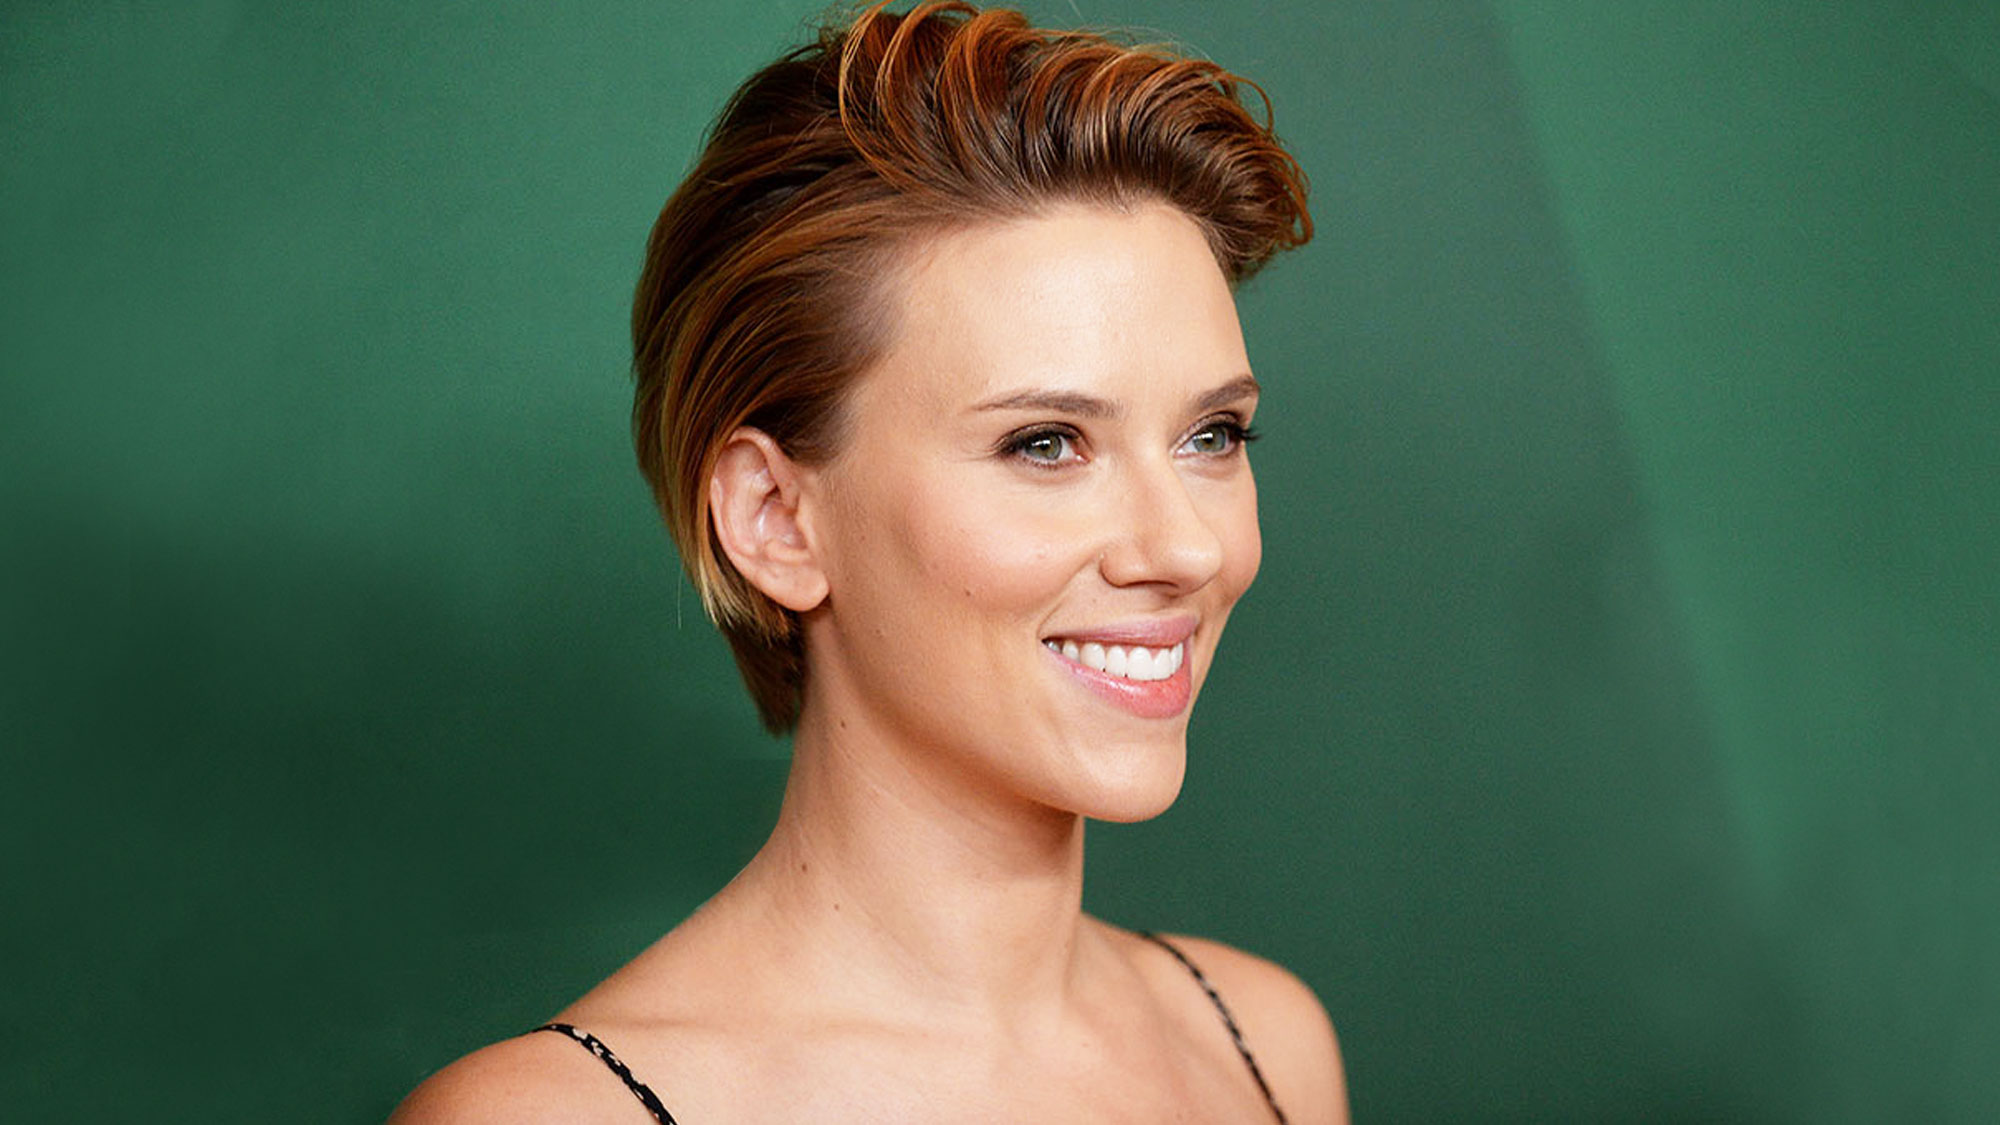 Short Hairstyles: Short Hairstyles: 100+ Celebrity Cuts To Inspire Your New 'do